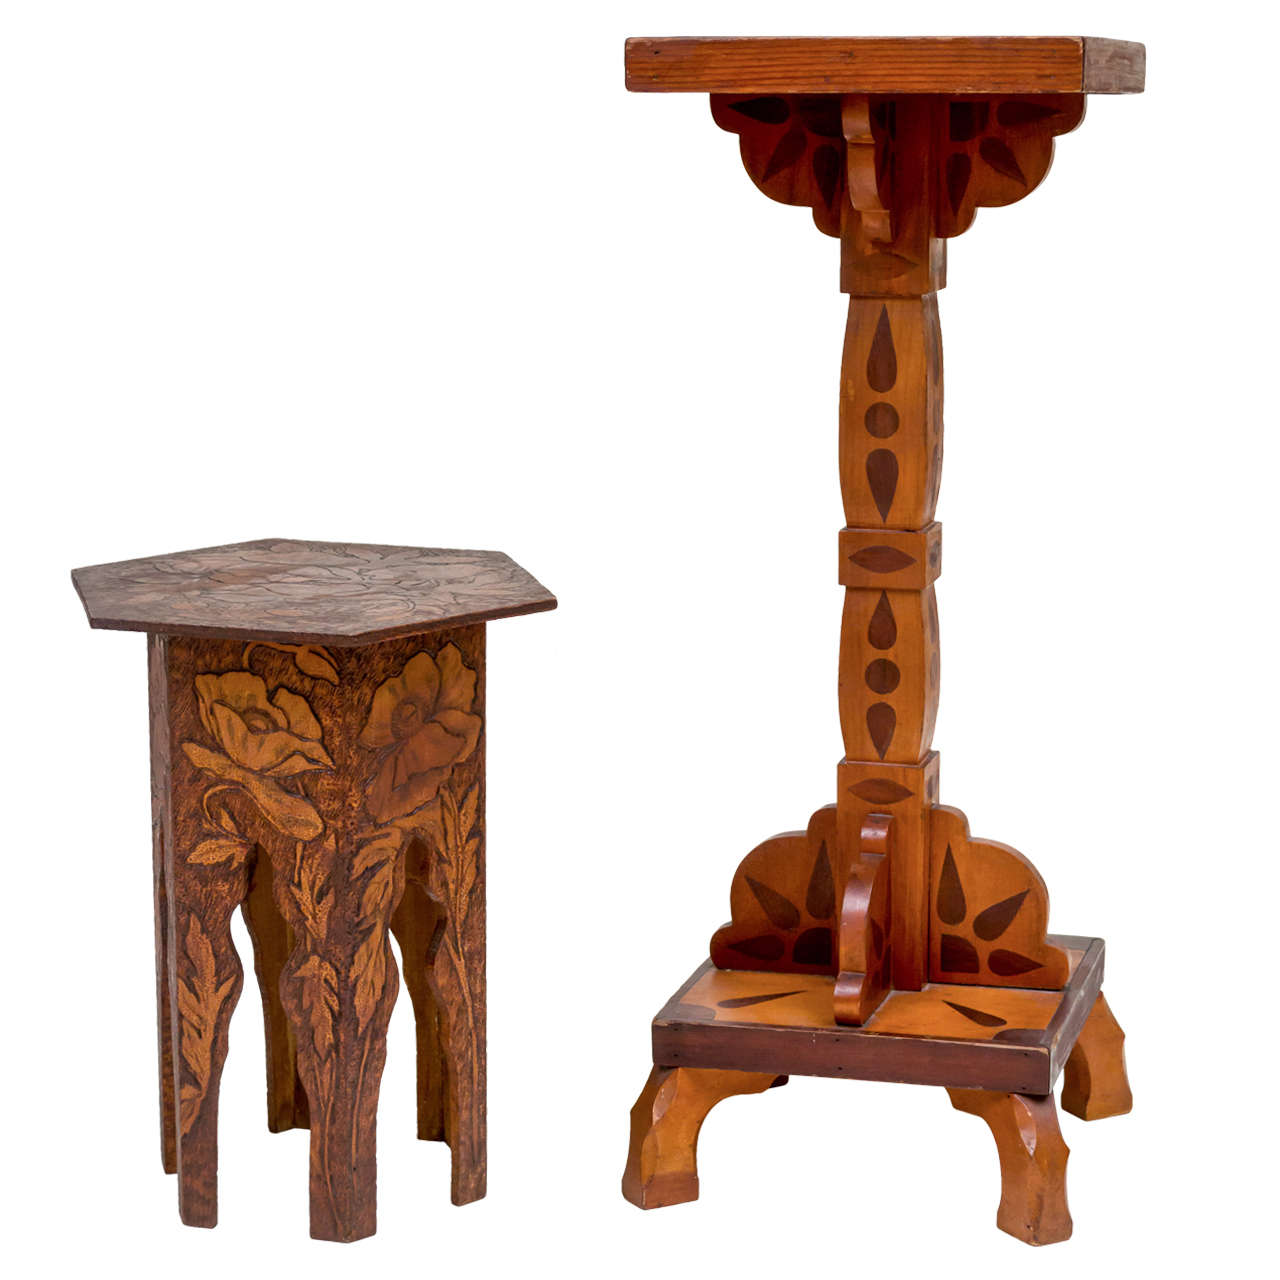 American Folk Art Marquetry Pedestal Table And Poppy Pyro Taboret, Set Of 2  1